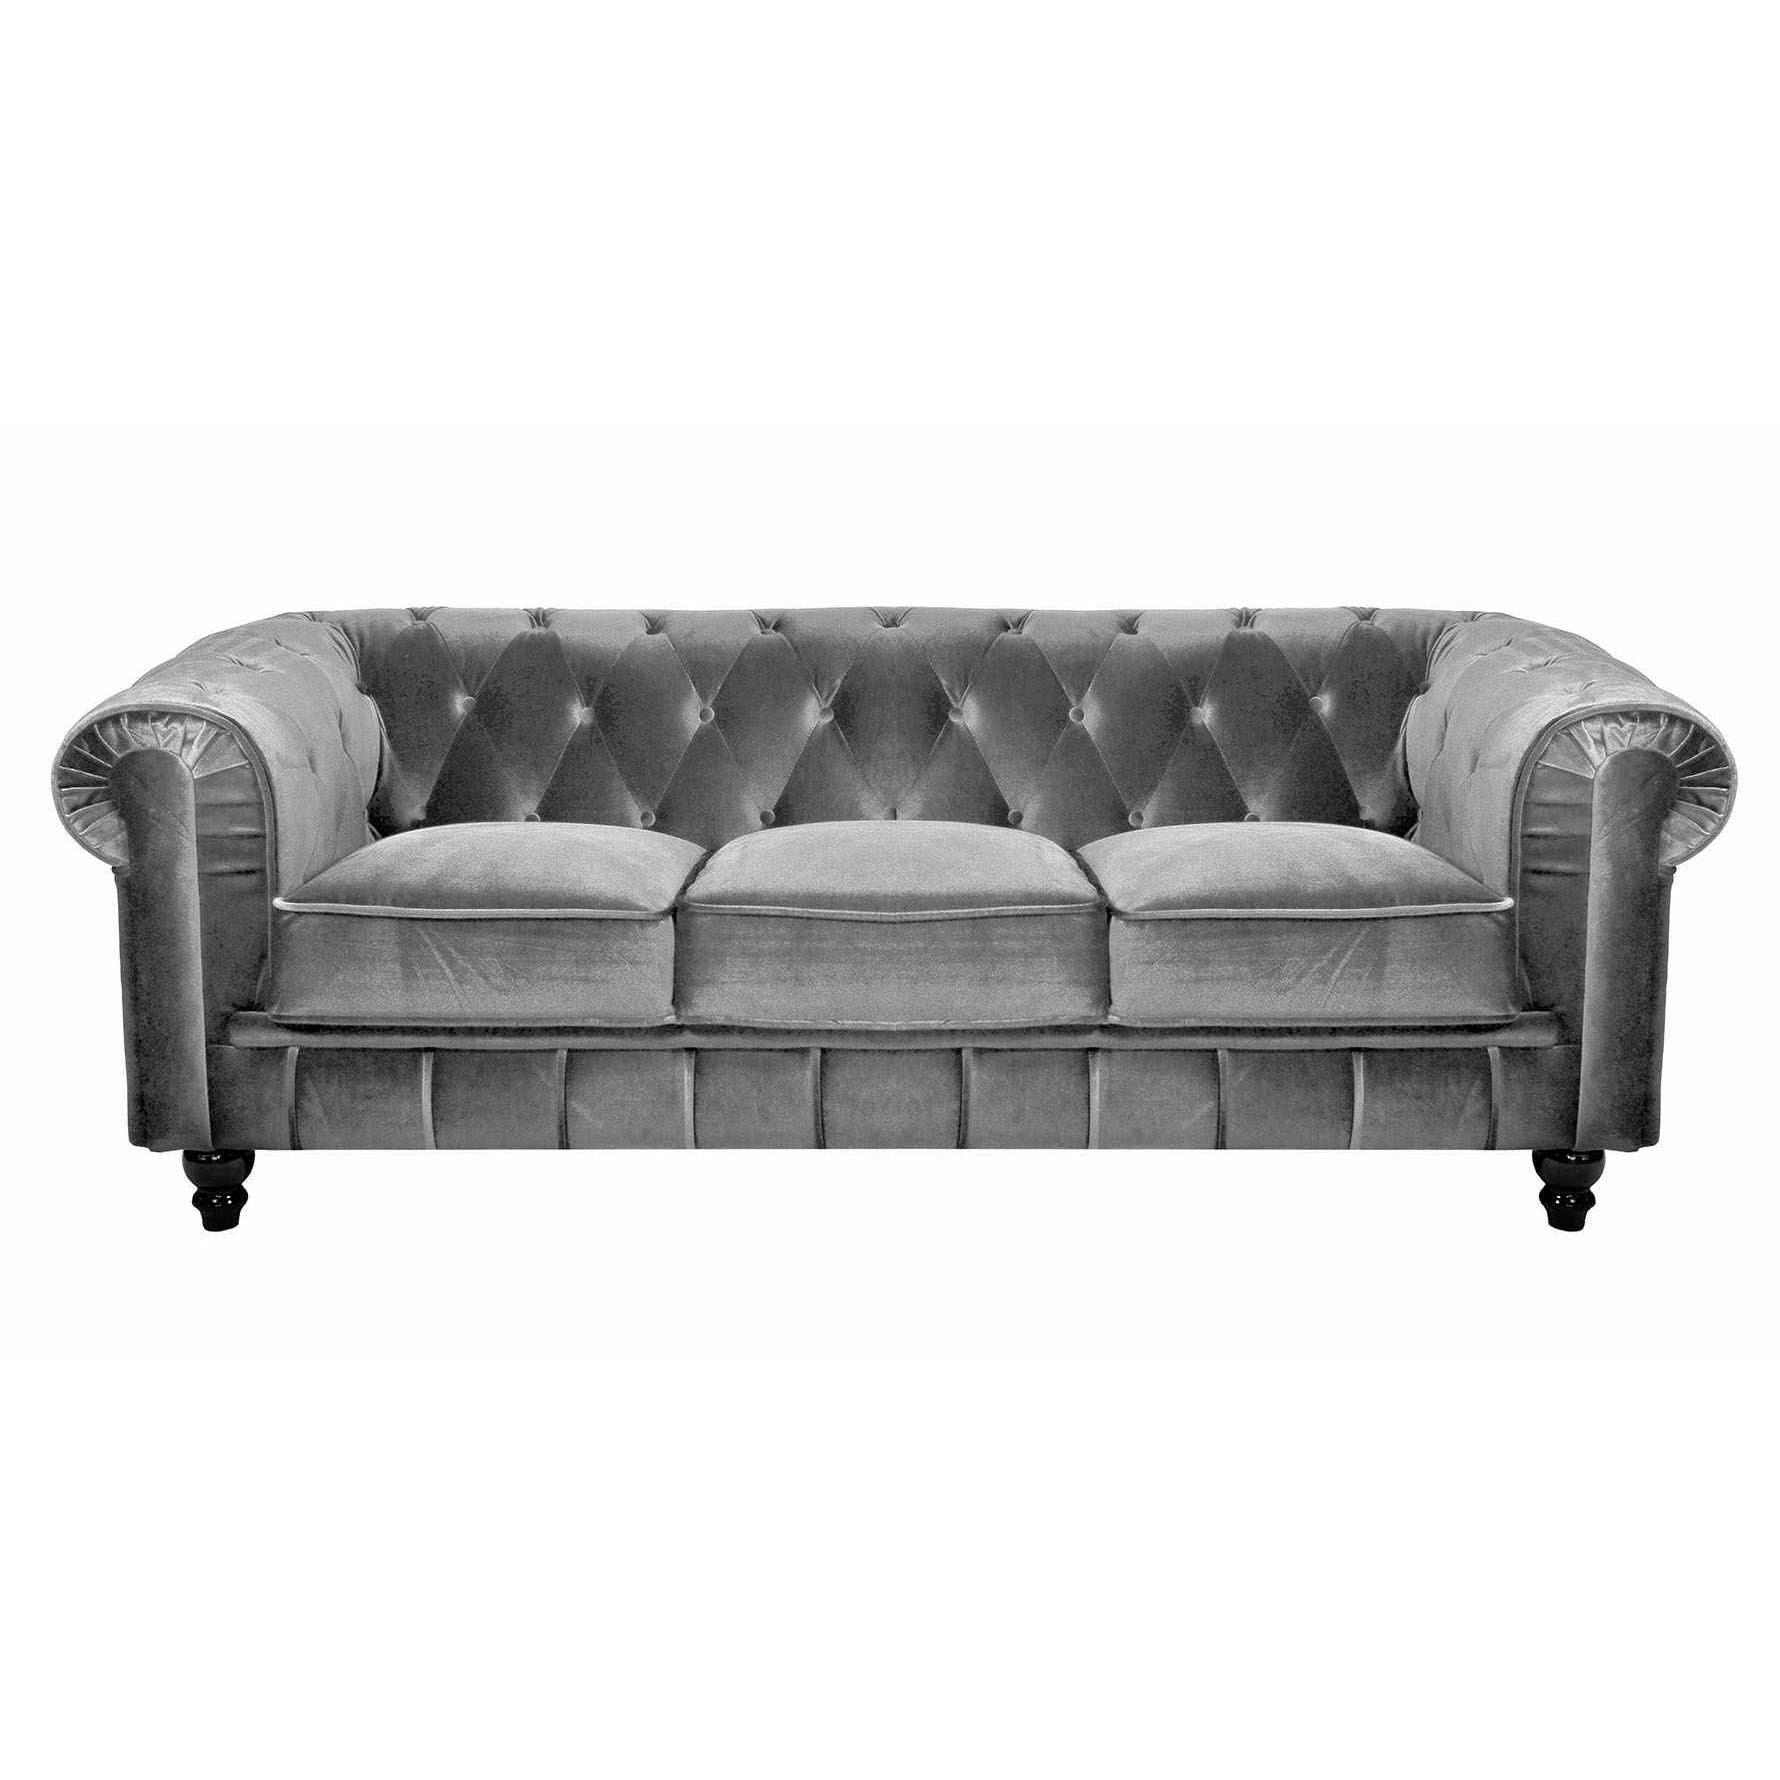 Deco in paris canape 3 places velours gris chesterfield for Canape chesterfield en velours